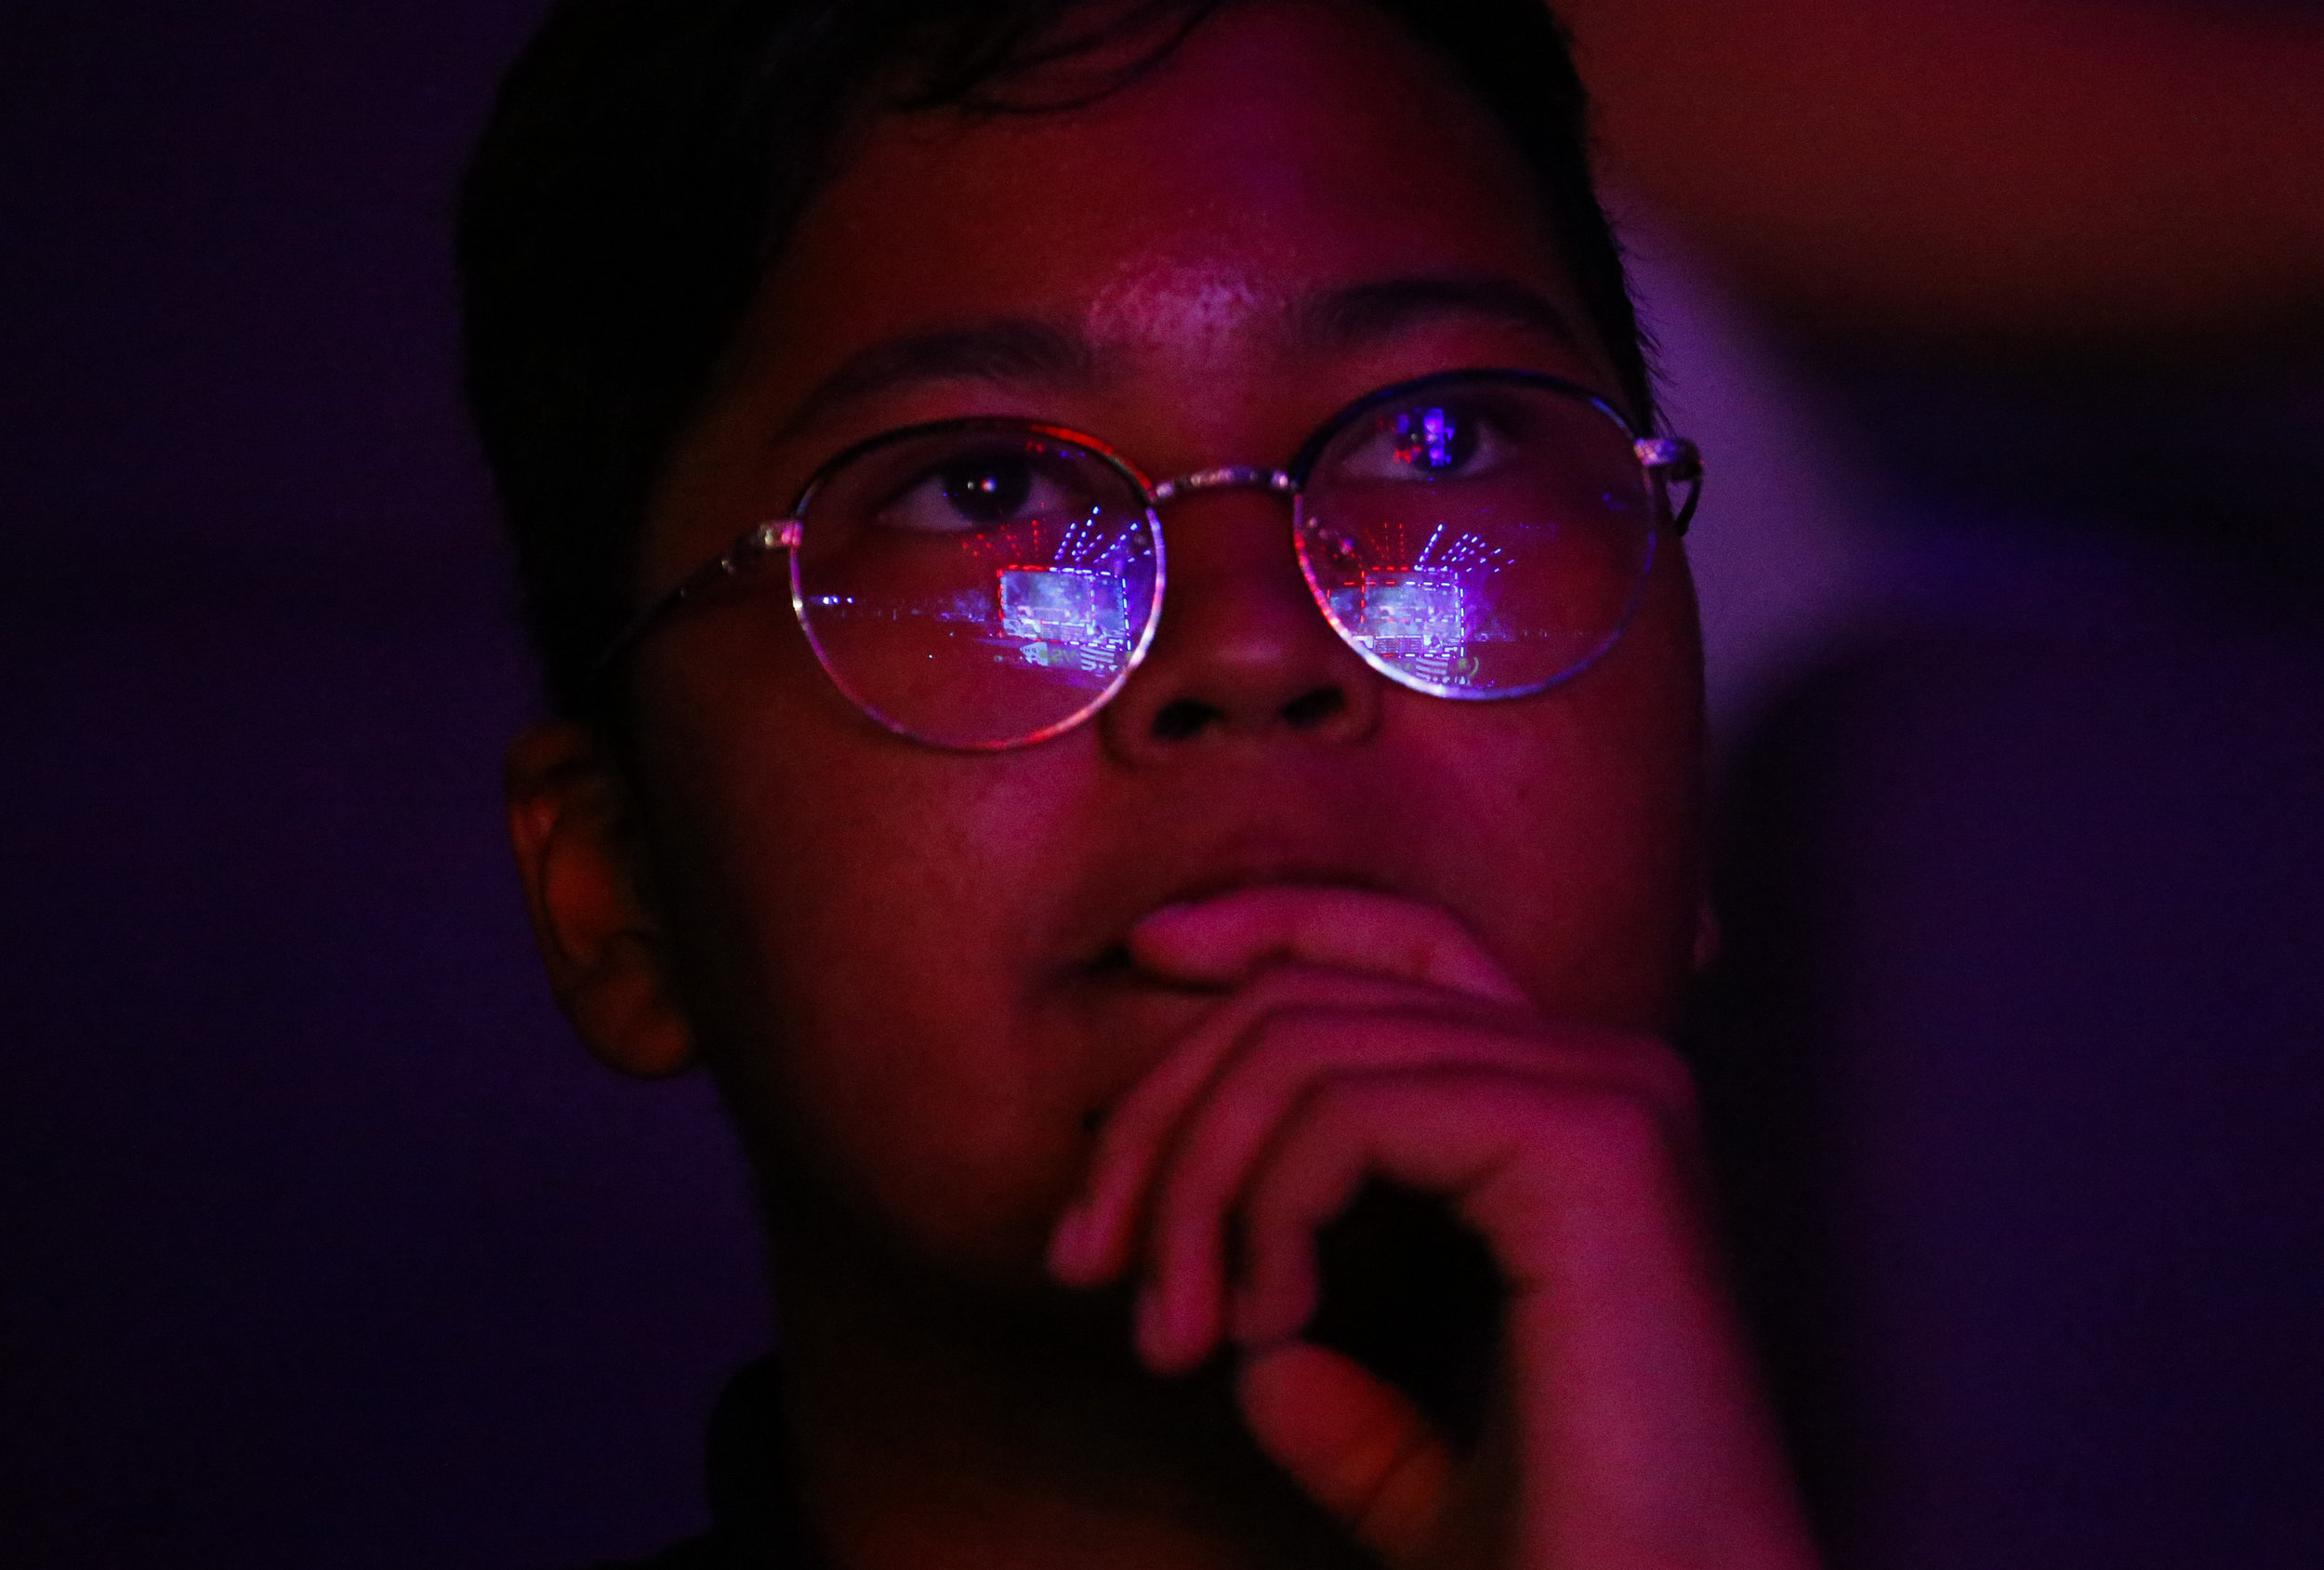 An audience member watches League of Legends players compete at Hyperplay, an e-sports tournament held in Singapore, August 4, 2018. REUTERS/Feline Lim